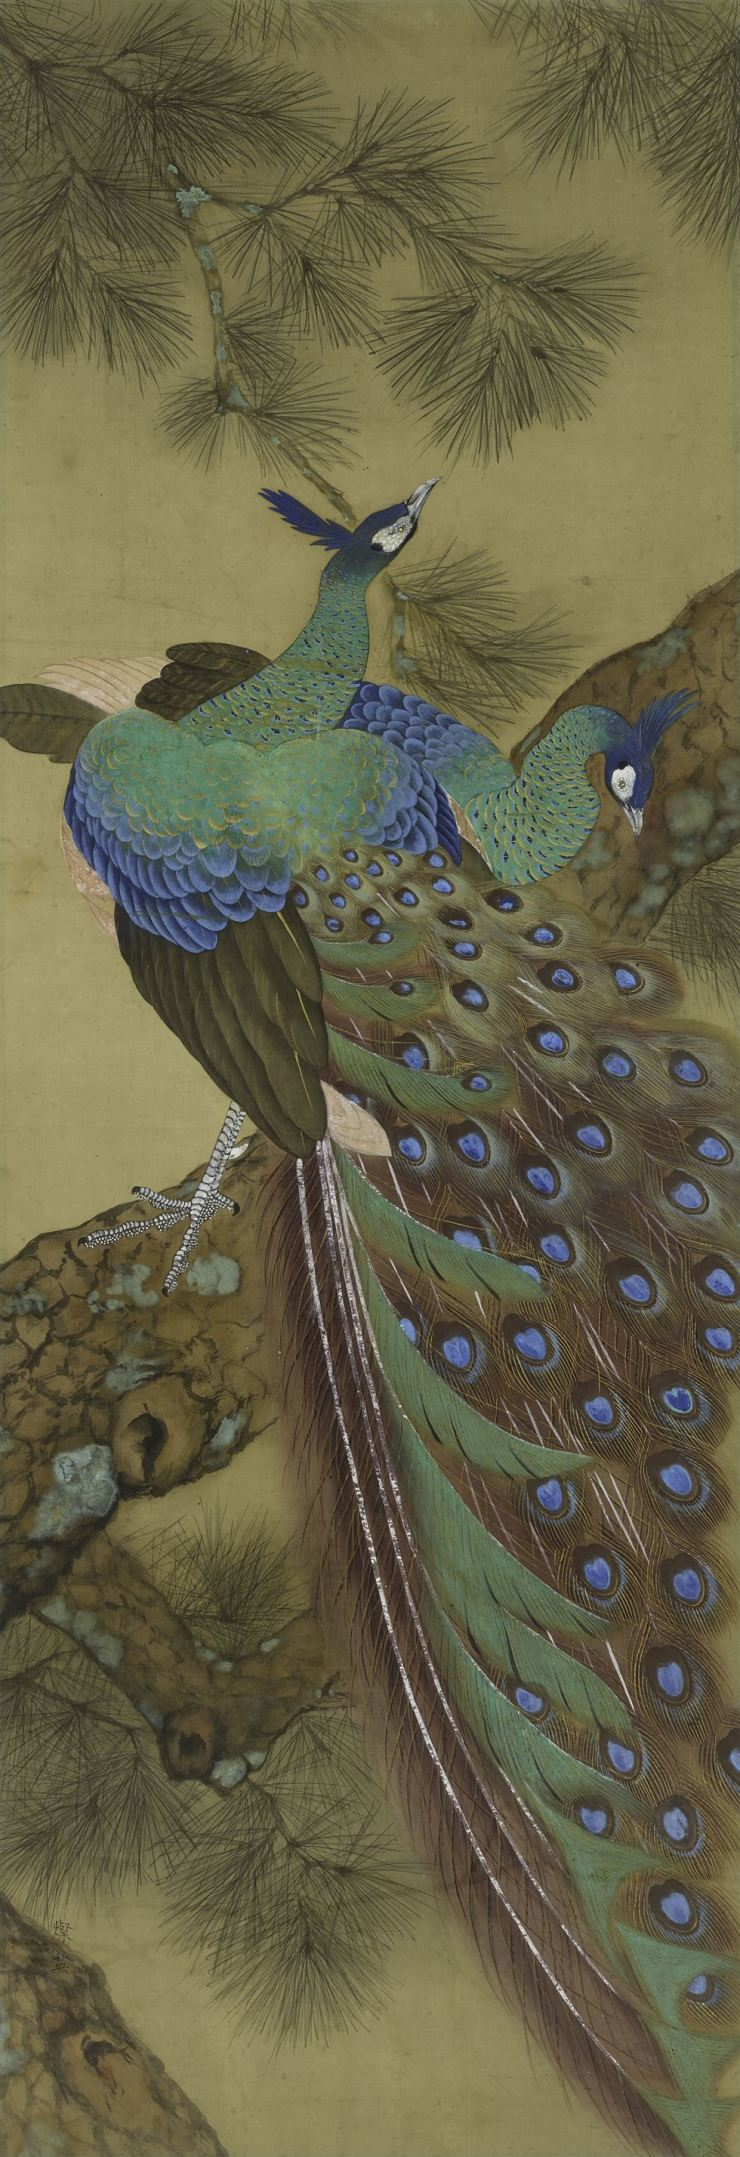 Jung Chan-young's 'Peacock' (1935) / Courtesy of MMCA